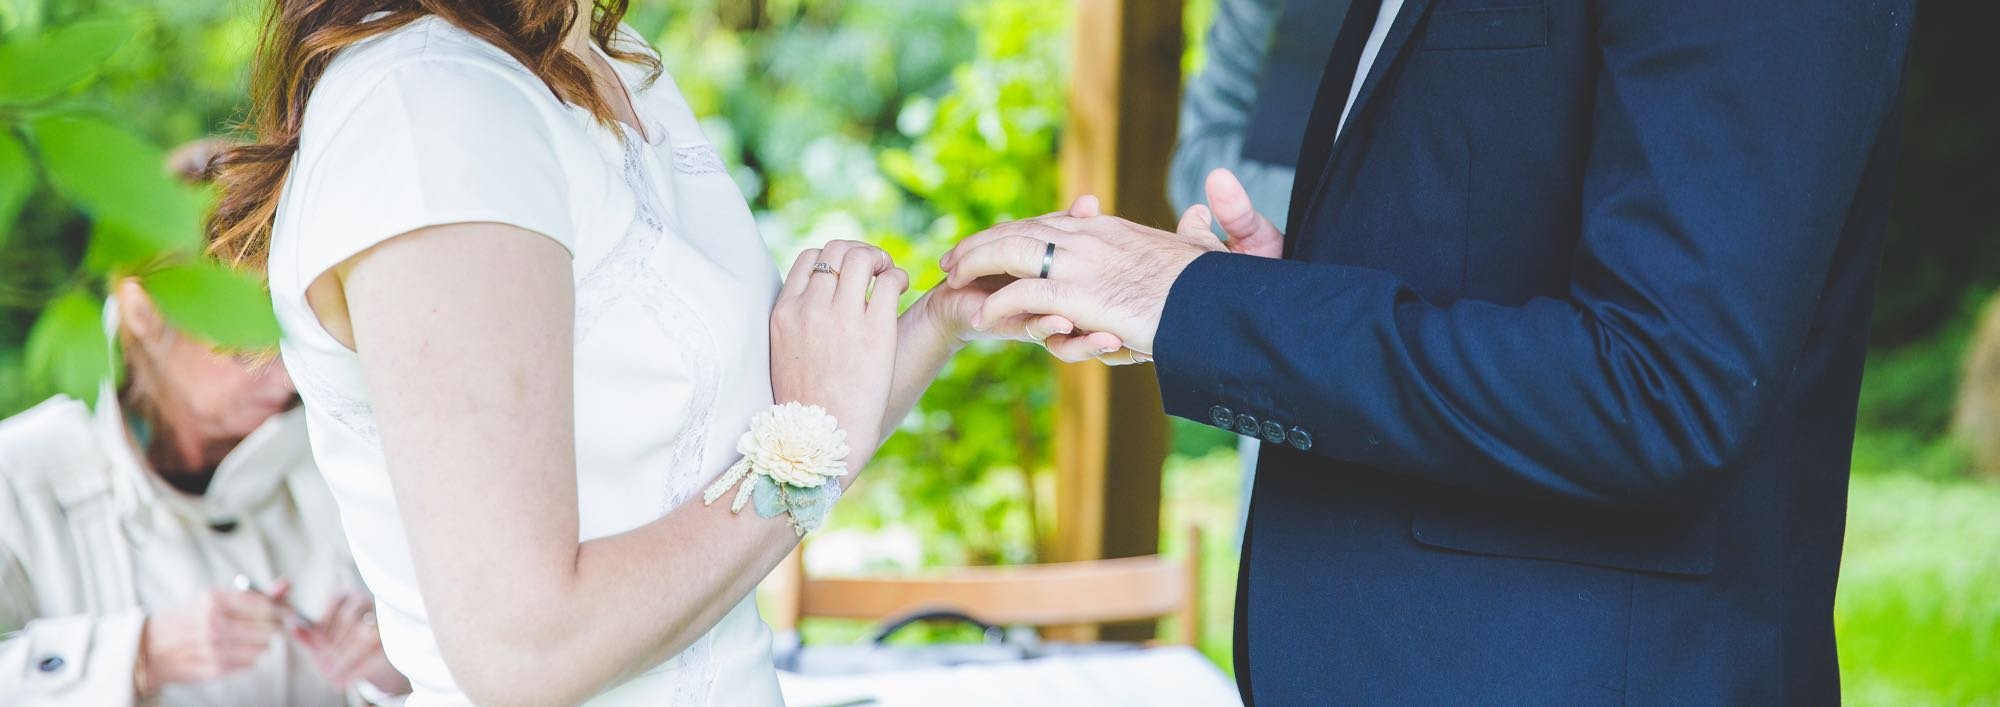 This image shows an elopement couple exchanging rings. You can only see the middle section of the couple (from the waist to the neck) and it is a close-up, detail shot. The bride has just placed the ring on her groom's finger. The bride is wearing a cap-sleeved, white dress and has a flower on her wrist. She has long, dark hair that she's wearing loose. The grooom group is wearing a dark blue suit. In the background there are lots of green trees, shrubs and grass. On the left you can see part of the registrar's assistant. She is seated, placing the lid on a pen. The registrar is just visible behind the groom. He is standing and wearing a gray suit. You can see part of the wooden arbour structure and the registrar's table and a wooden chair.